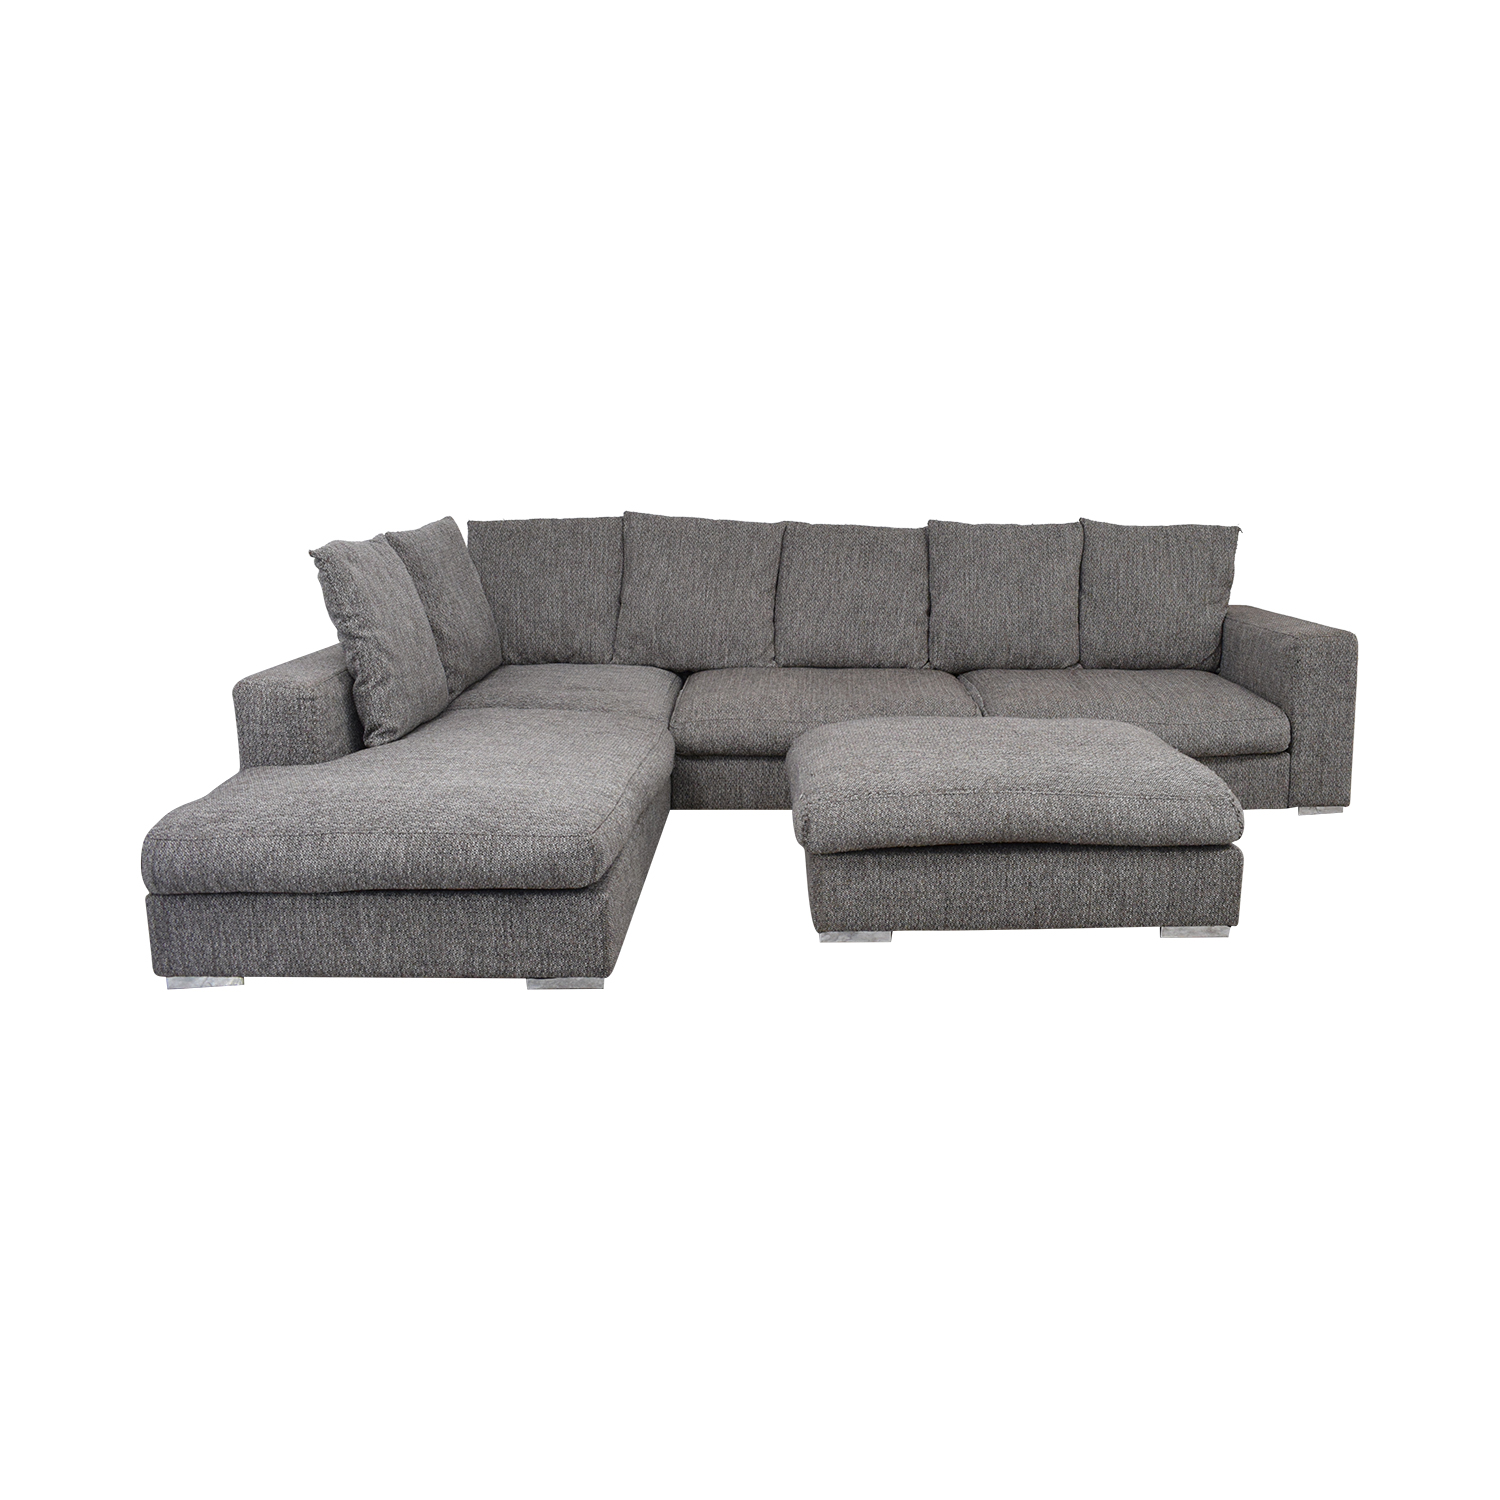 BoConcept BoConcept L-Shaped Modular Sofa with Ottoman ma